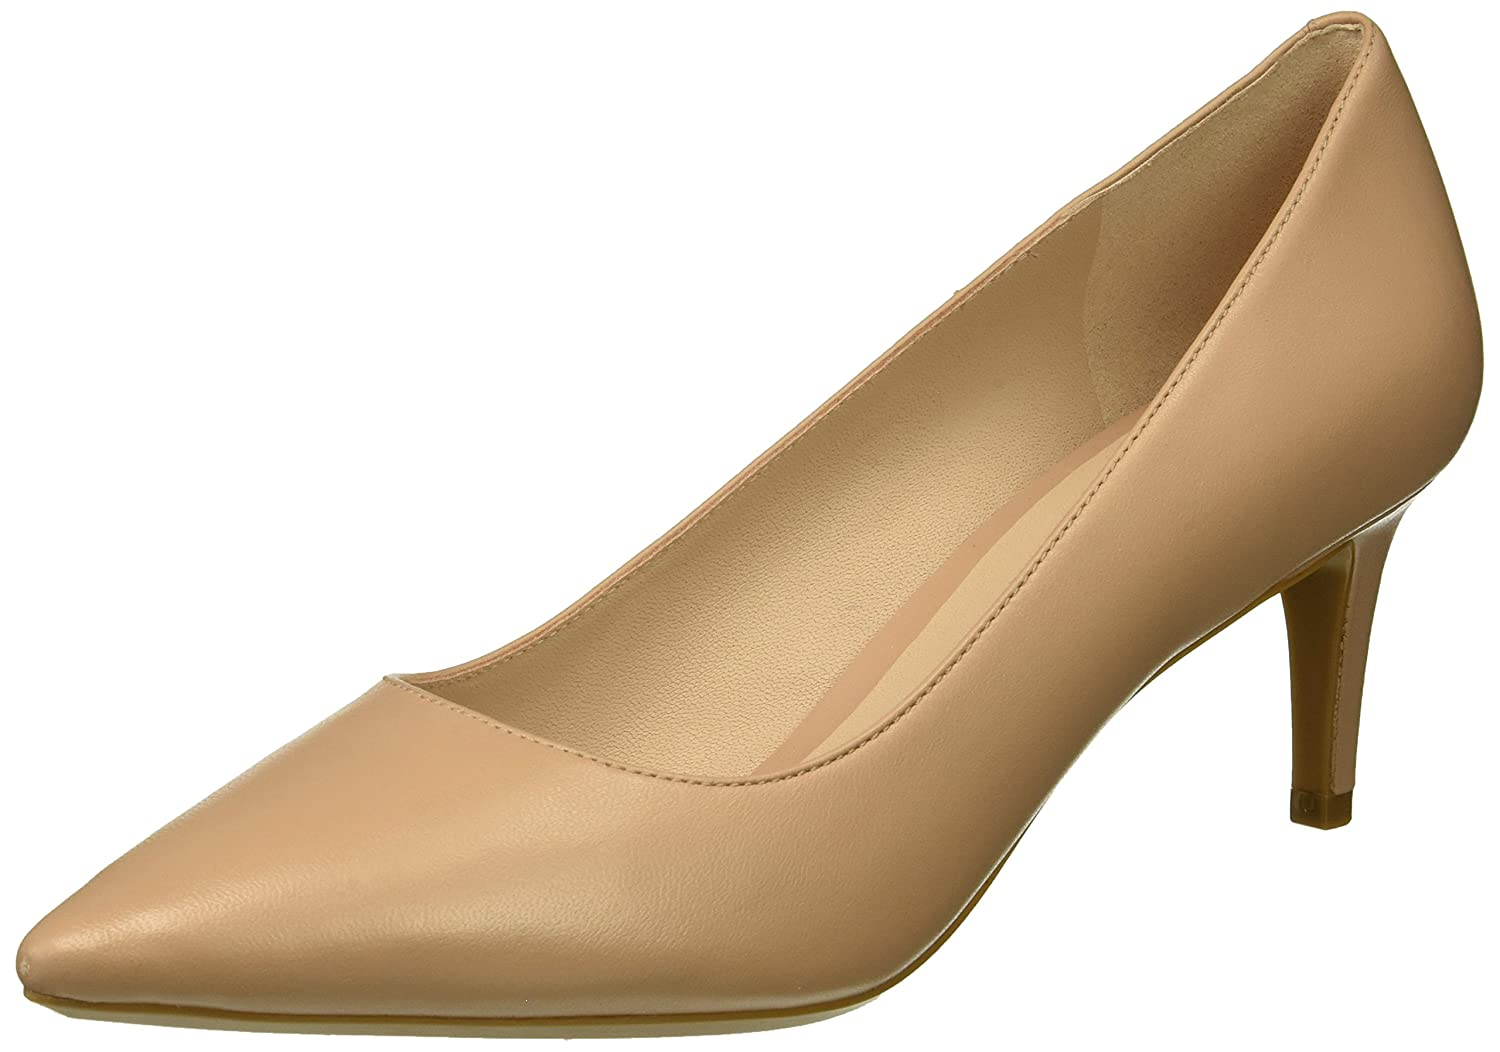 Nine West Women's SOHO9X9 Leather Pump B076HPGMZB 8 B(M) US|Medium Natural